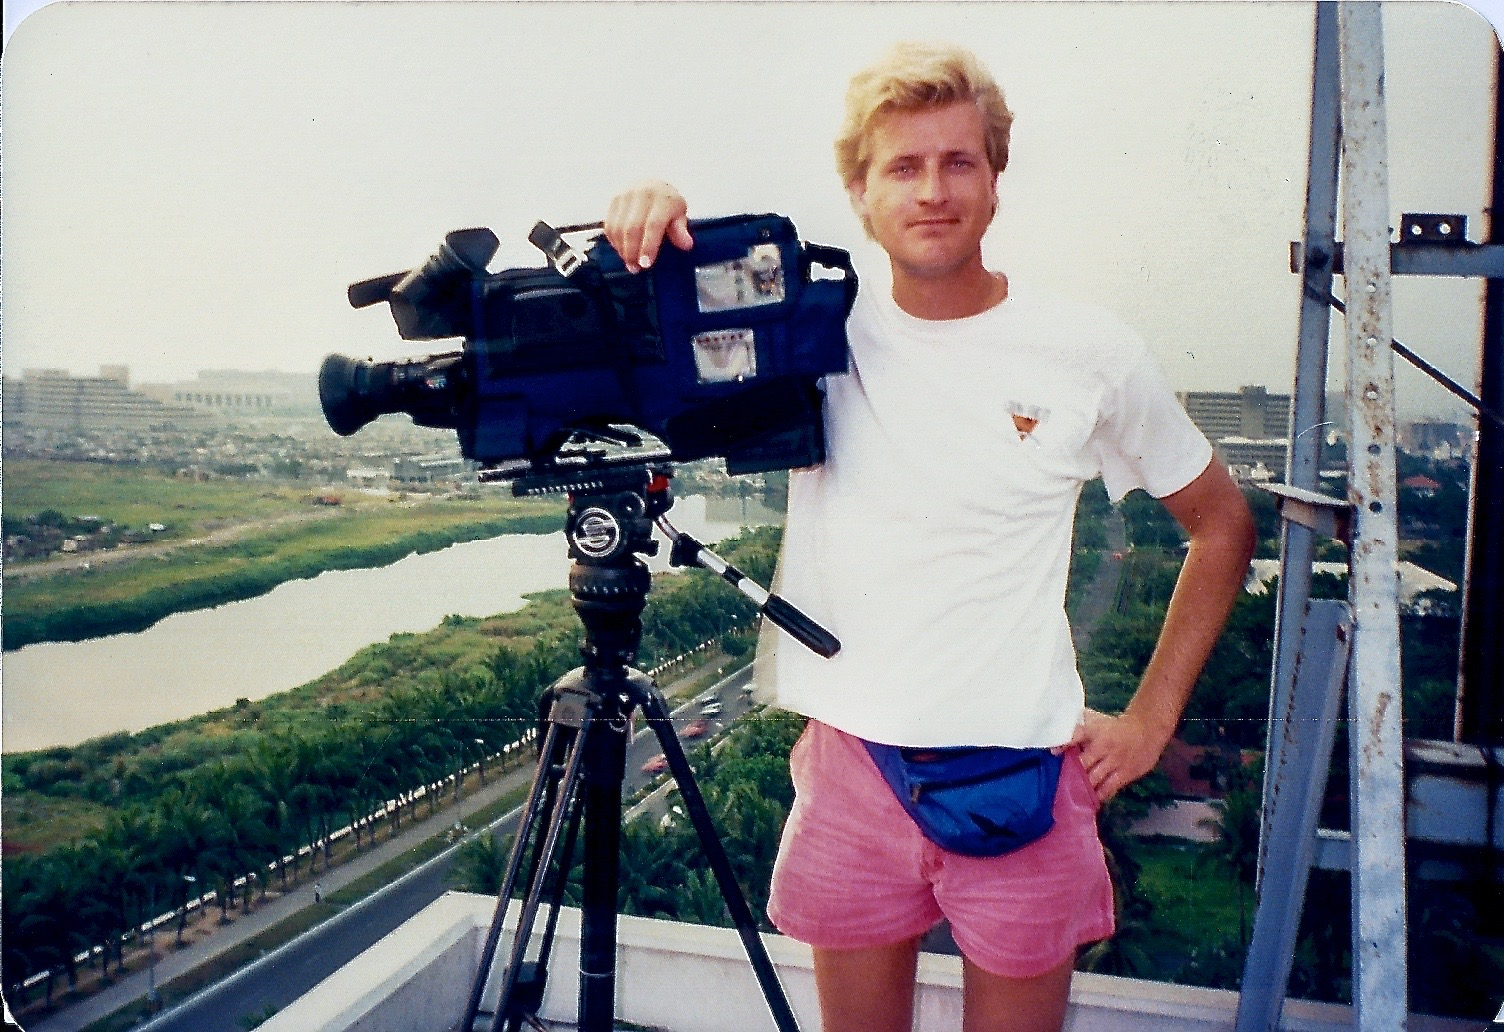 Shooting documentaries in Manila, Philippines while sporting then-in-fashion hot pants and fanny pack.